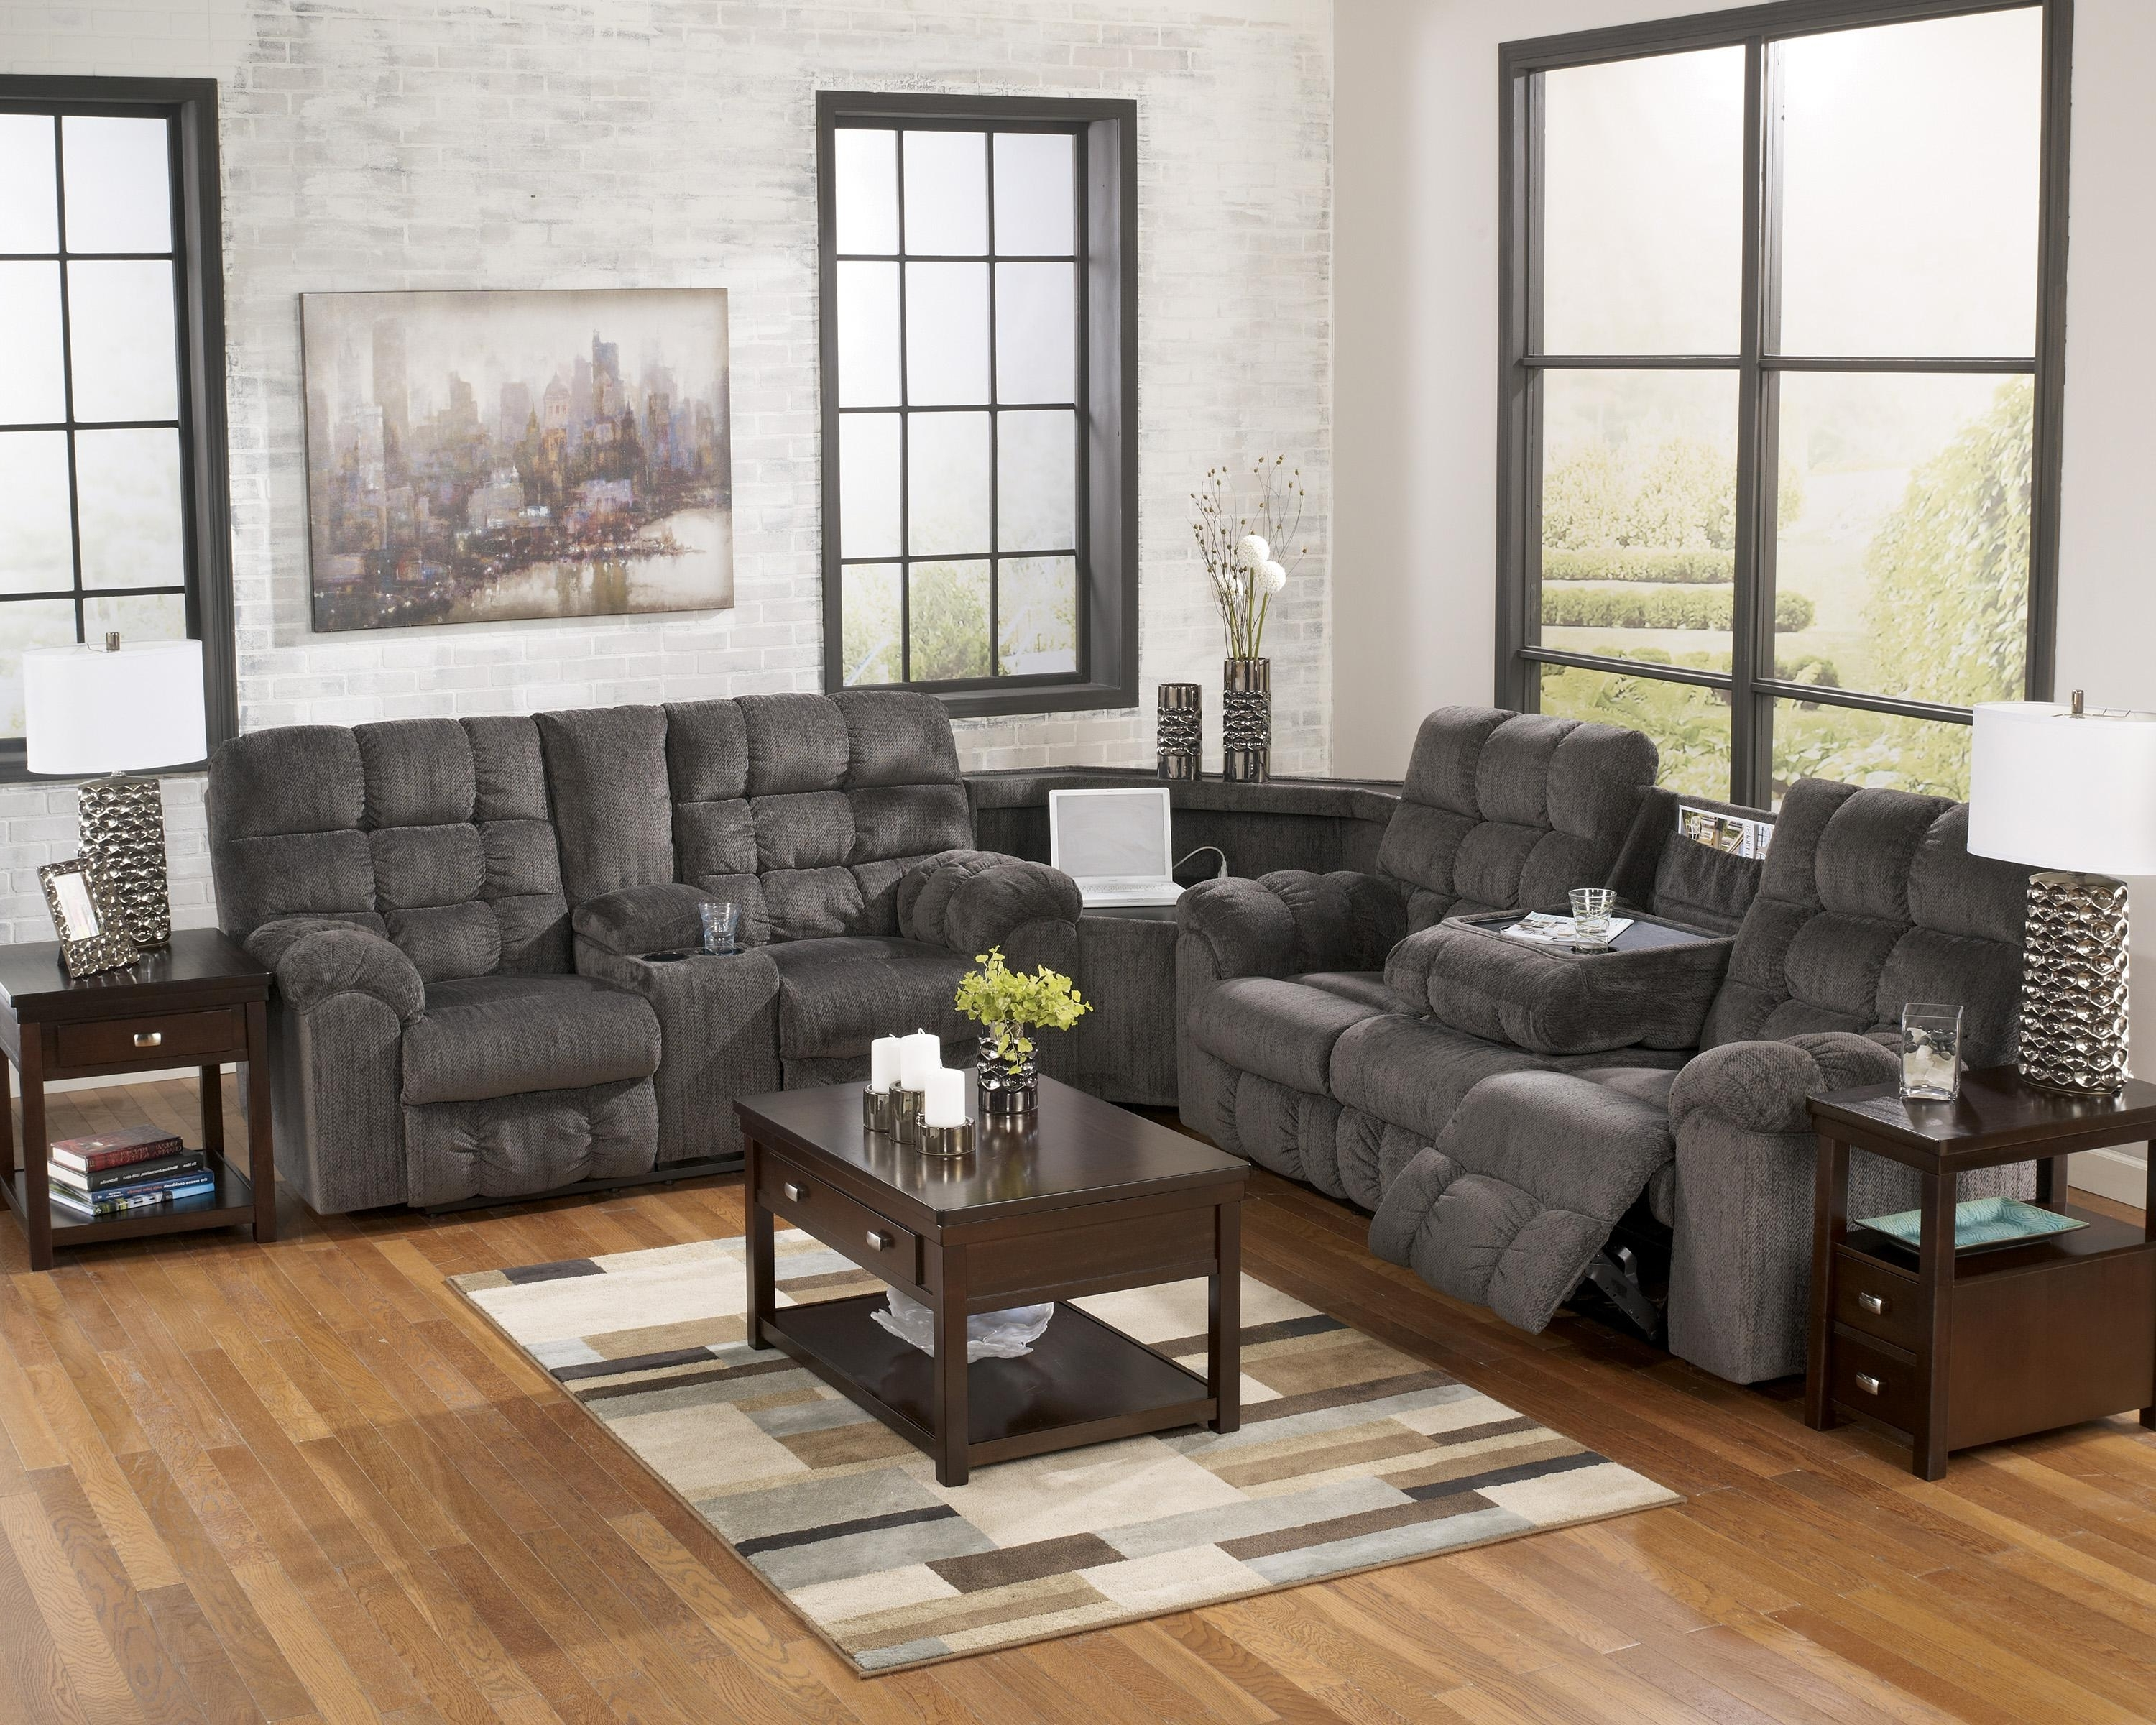 Most Recently Released Reclining Sectional Sofa With Right Side Loveseat, Cup Holders And Pertaining To Sectional Sofas With Cup Holders (View 6 of 20)